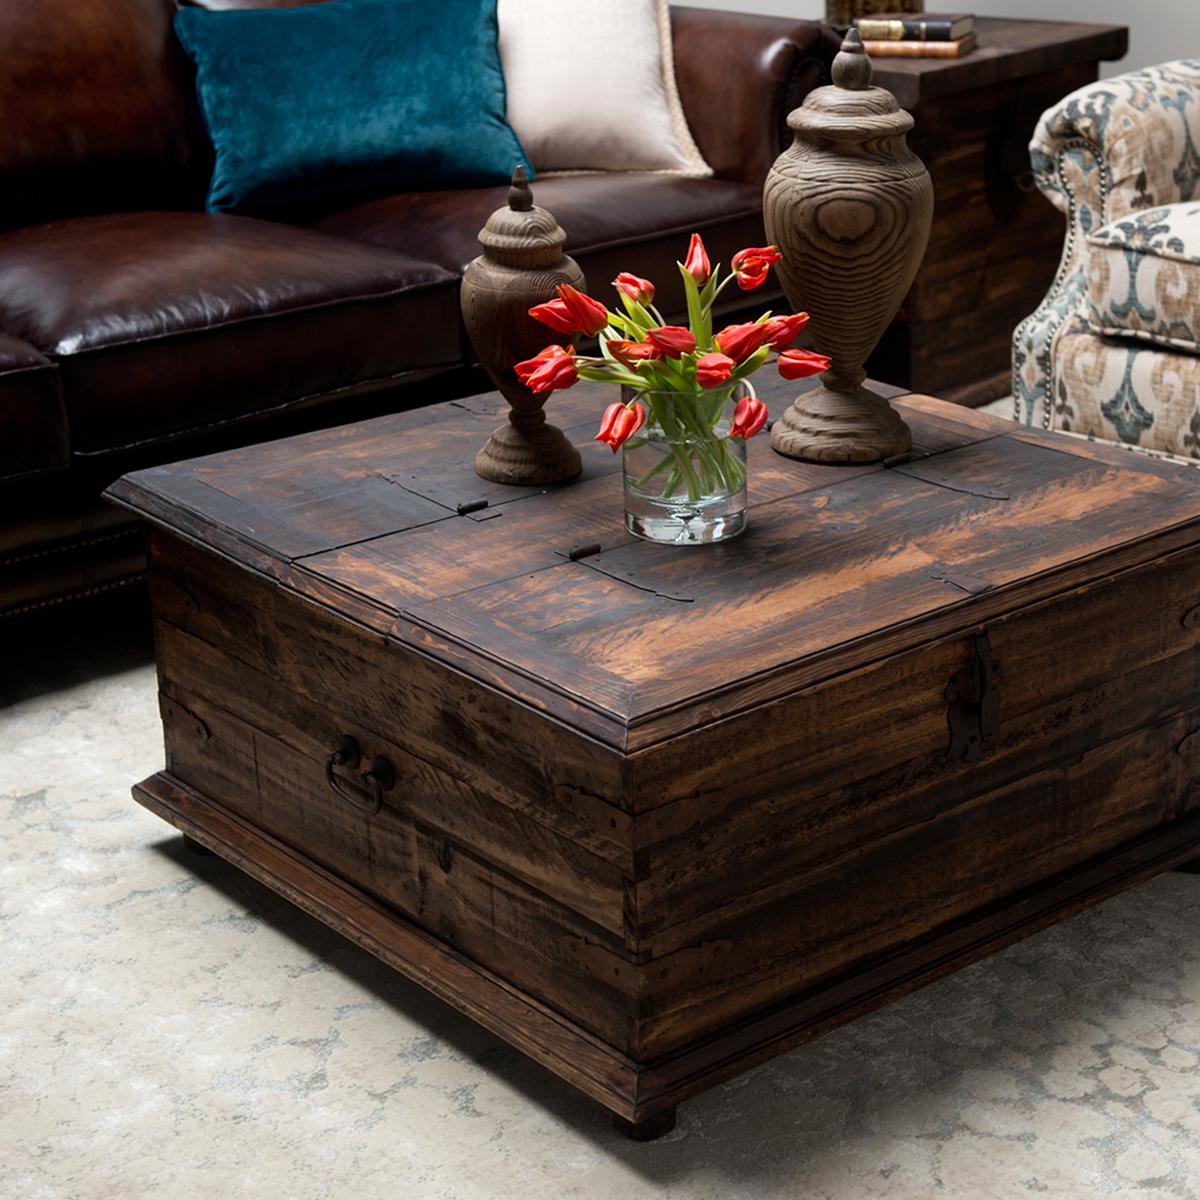 Rustic Trunk Coffee Table For Your Living Room Homes Furniture Ideas